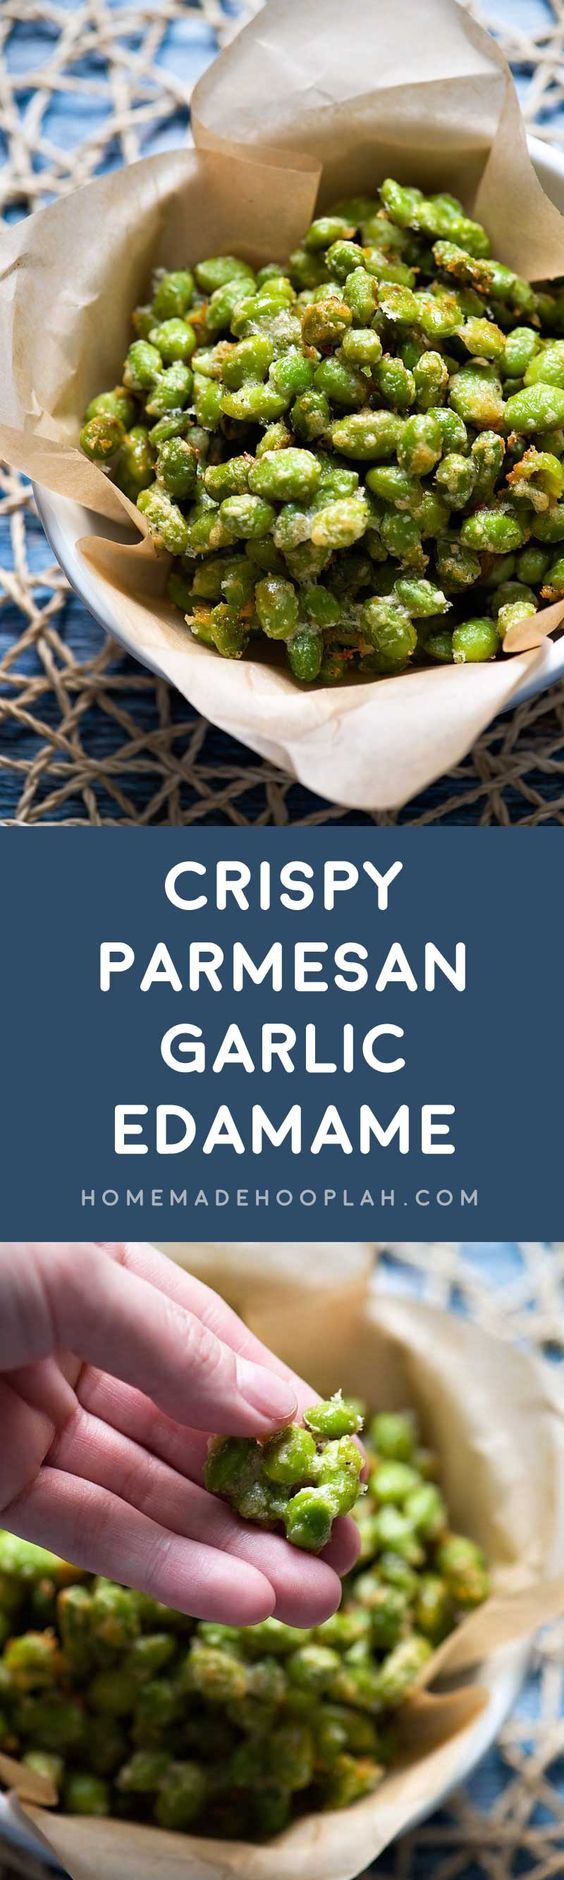 Crispy Parmesan Garlic Edamame! Baked in the oven, this edamame recipe is a tasty snack | healthy recipe ideas @xhealthyrecipex |